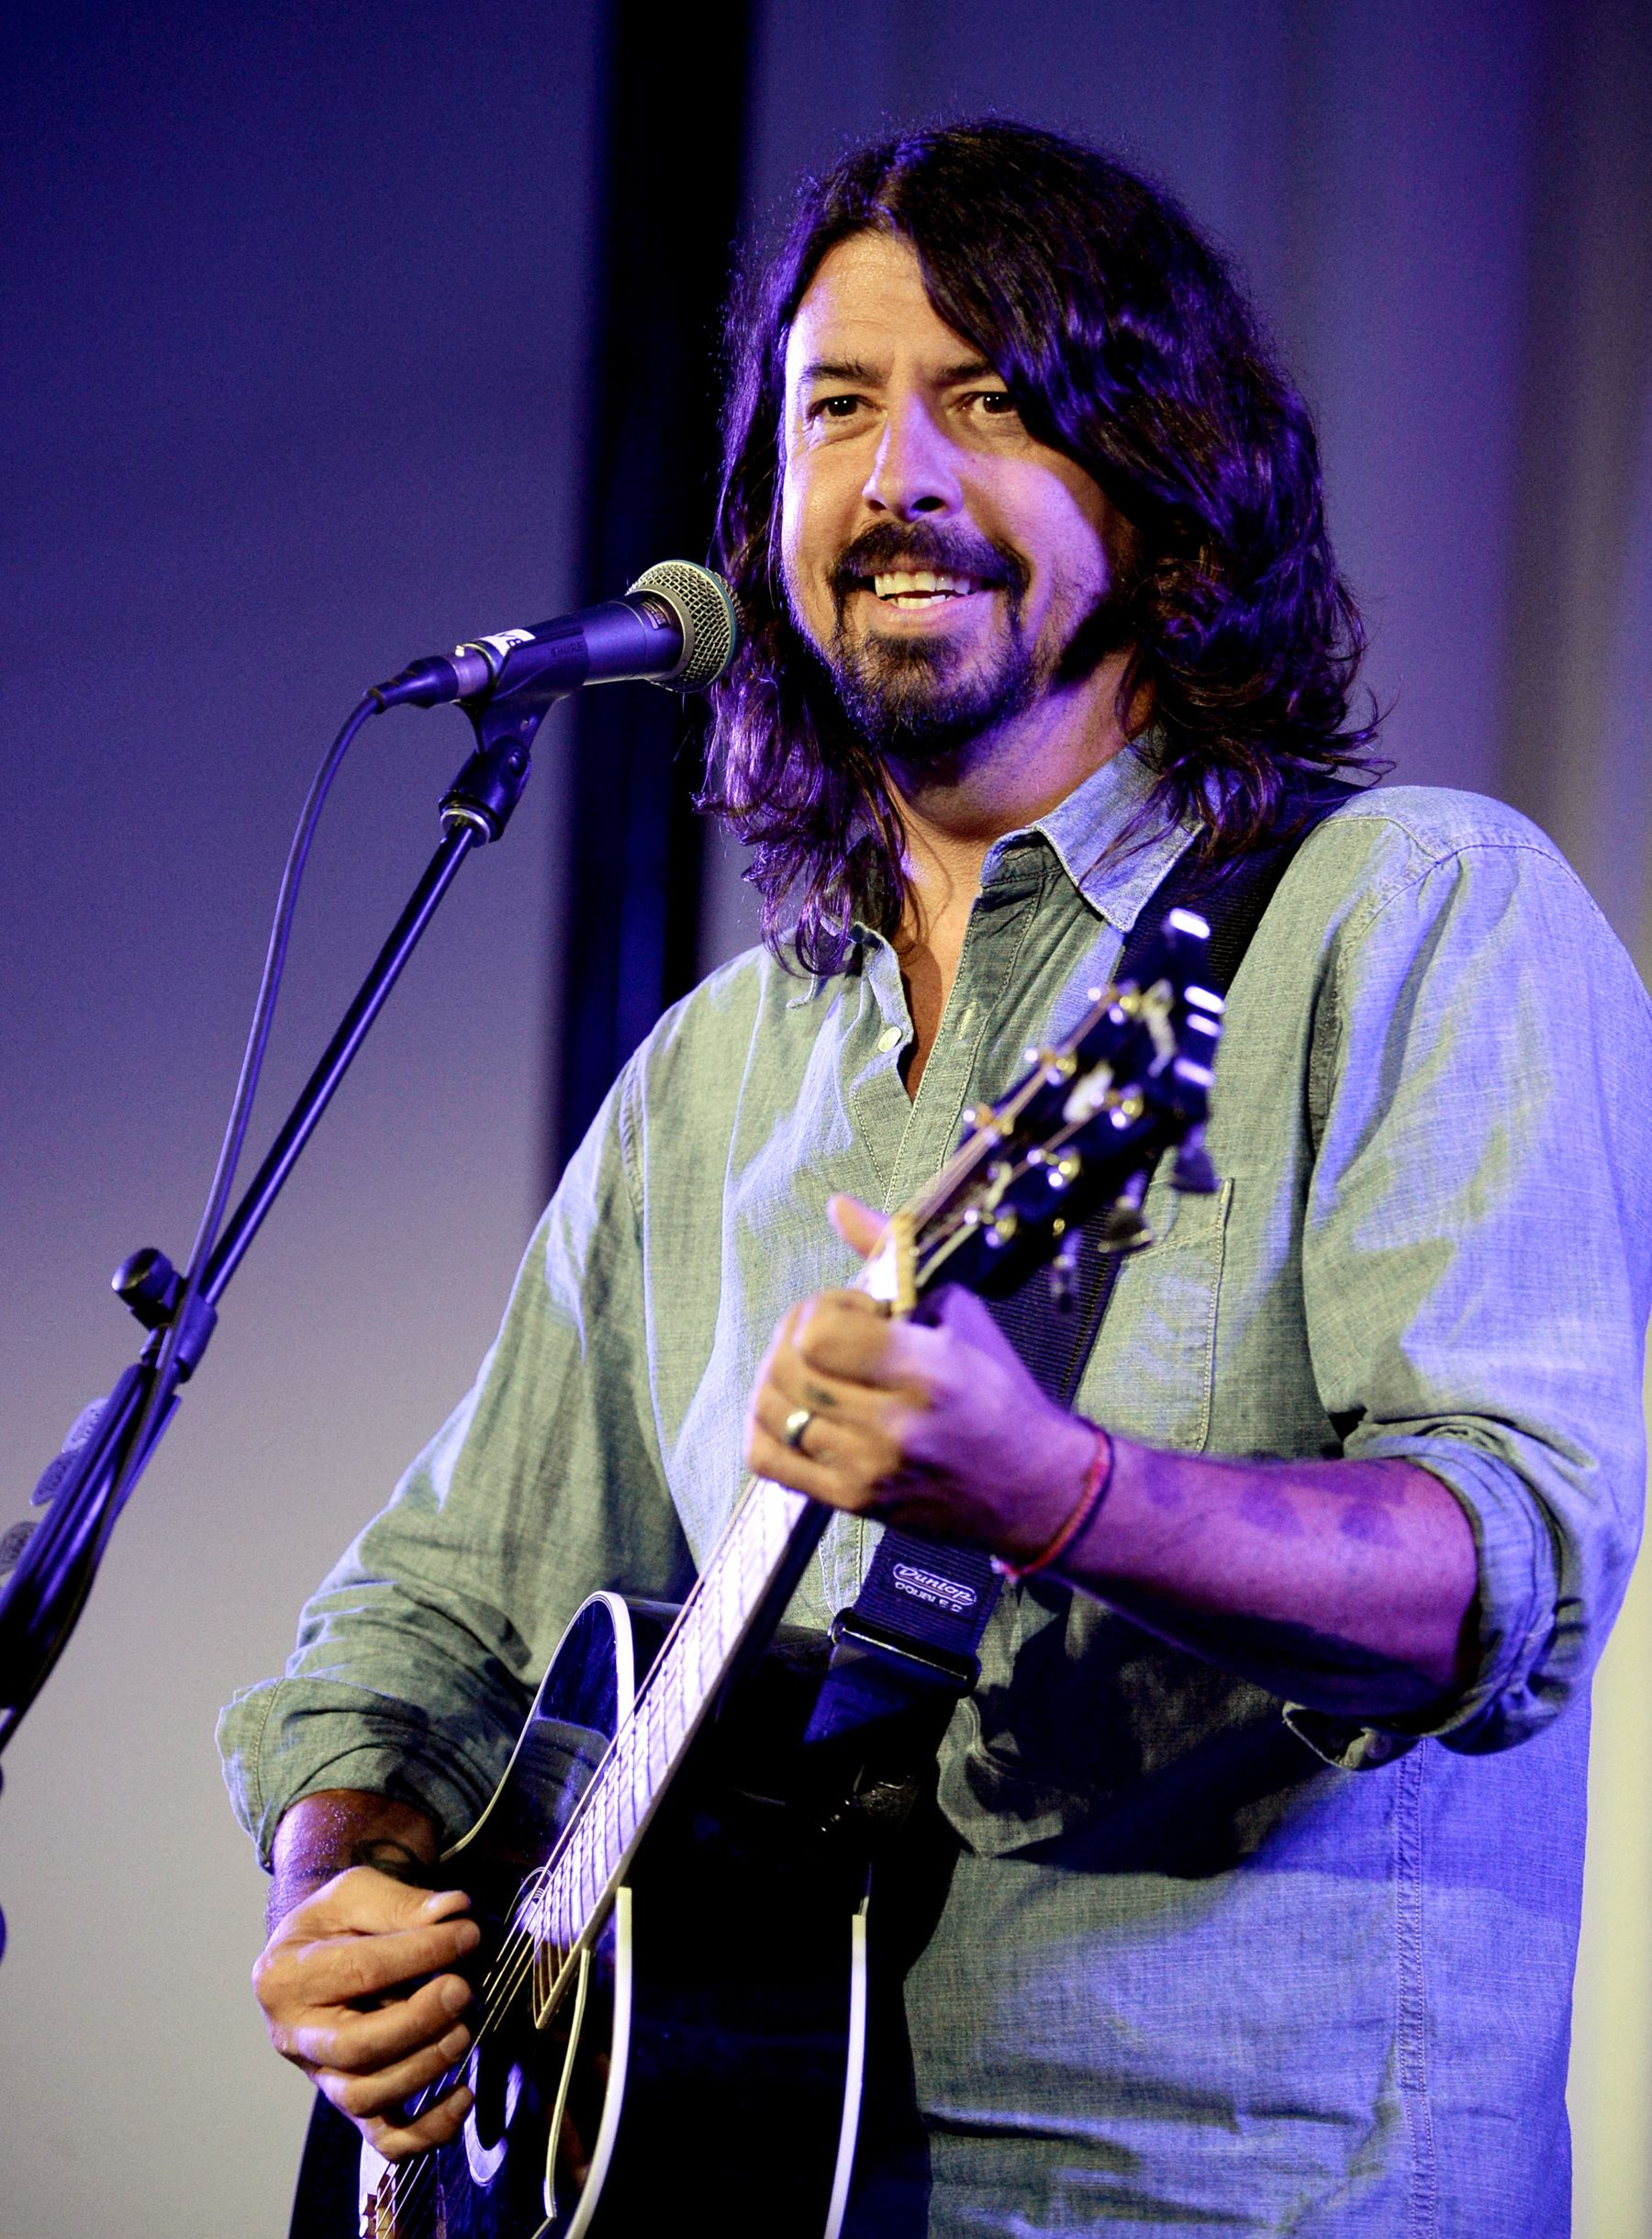 Dave Grohl, Nine Inch Nails, Queens of the Stone Age to Close Grammys